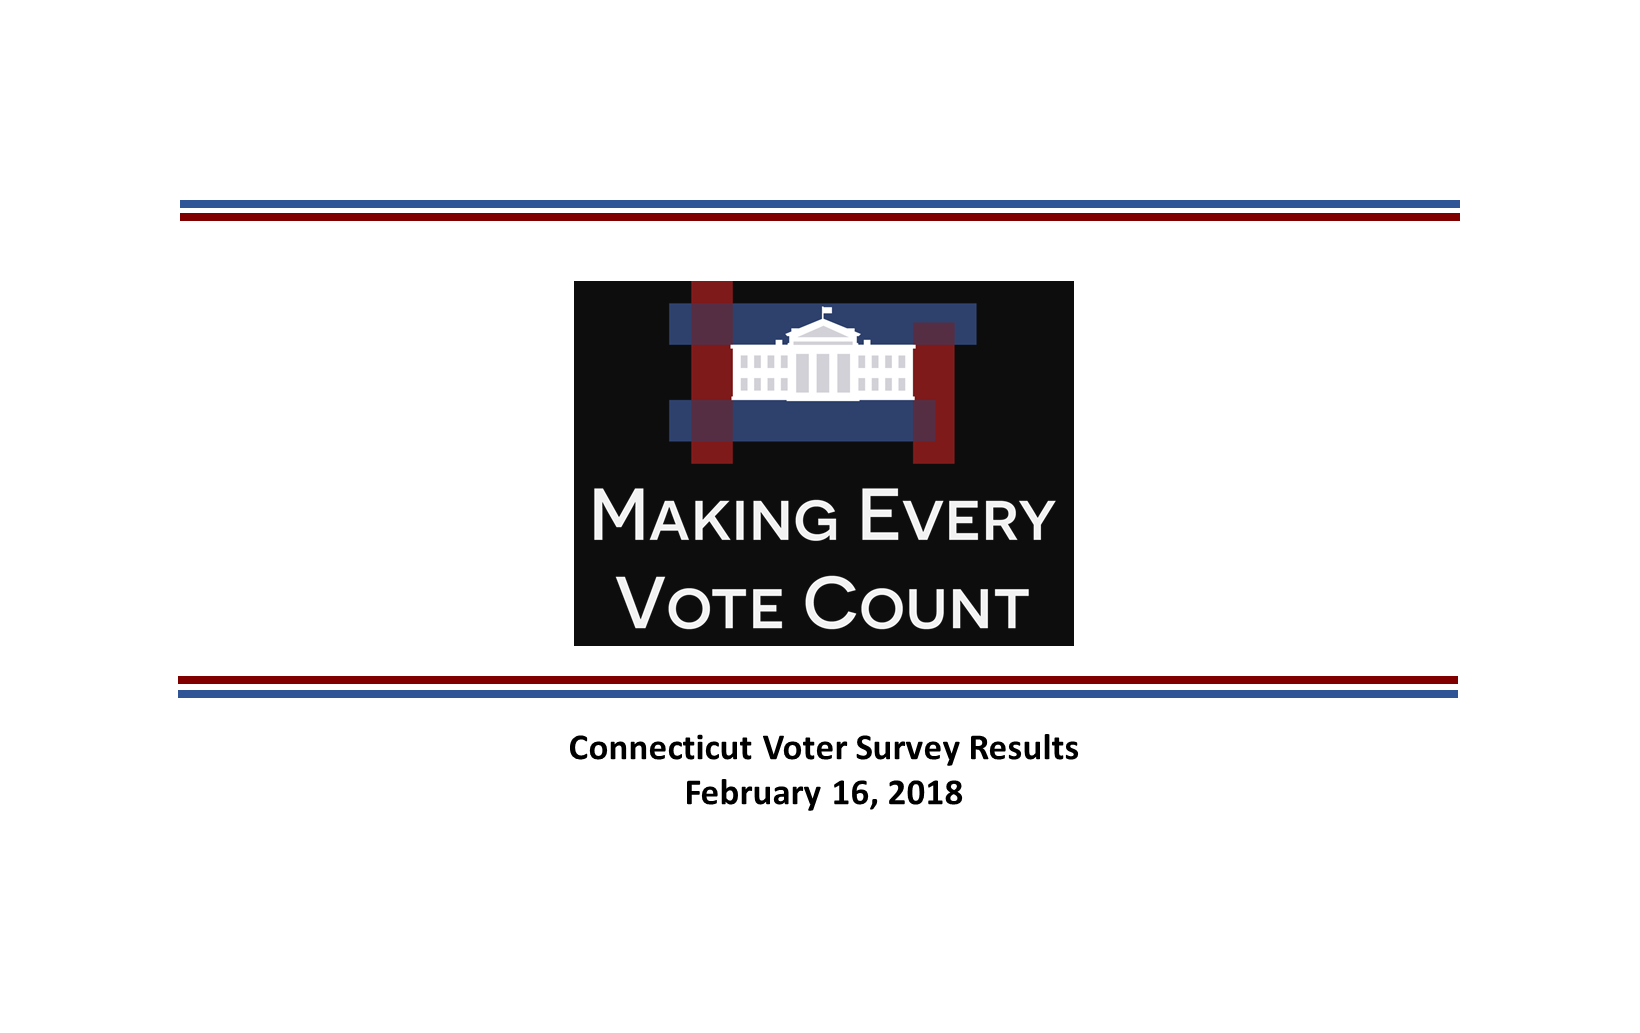 Connecticut Poll on NPV